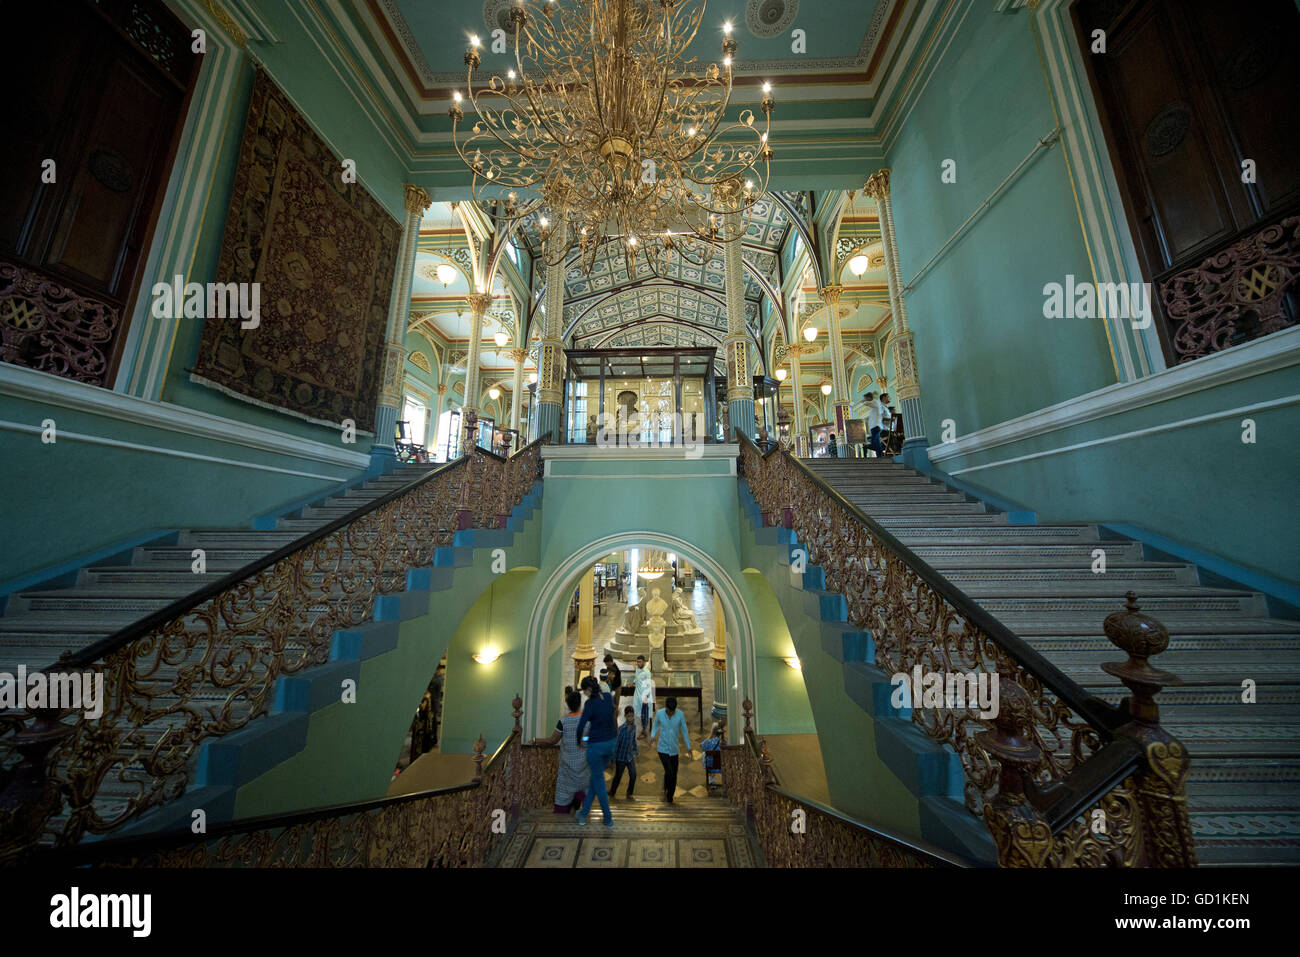 The image of Bhau Daji Lad Museum in Mumbai, India Stock Photo